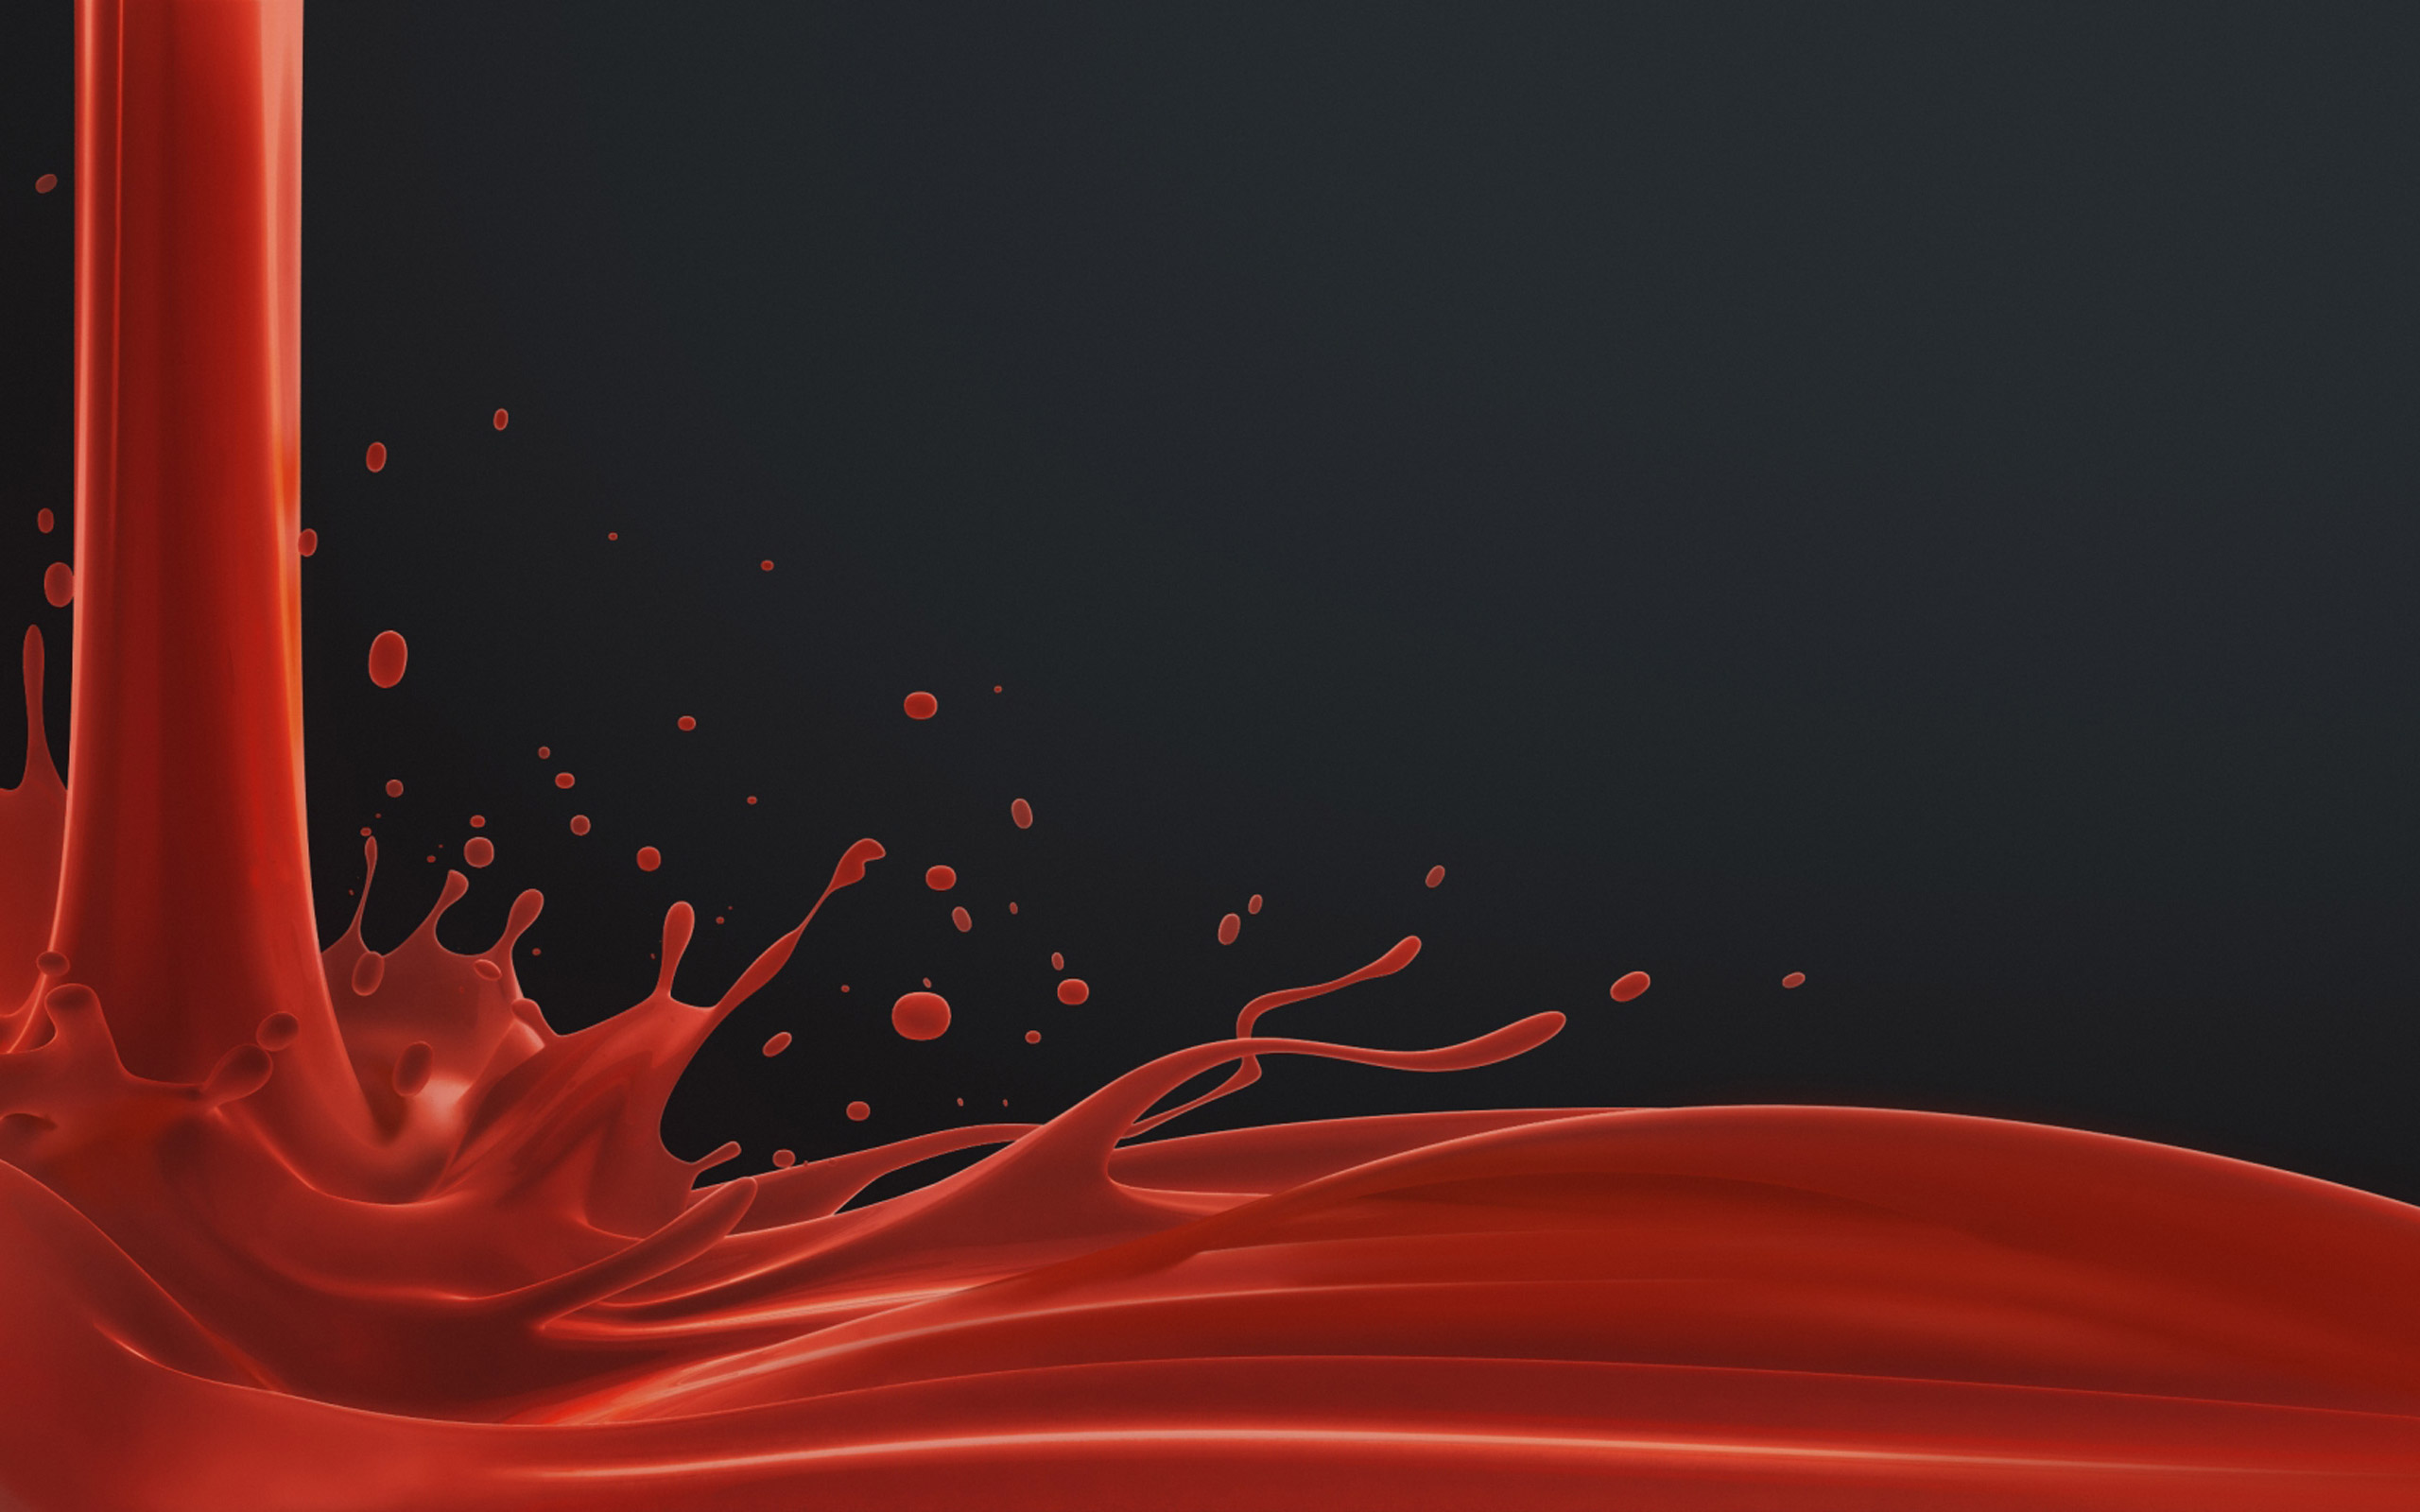 Tomato juice wallpapers and images   wallpapers pictures photos 2560x1600